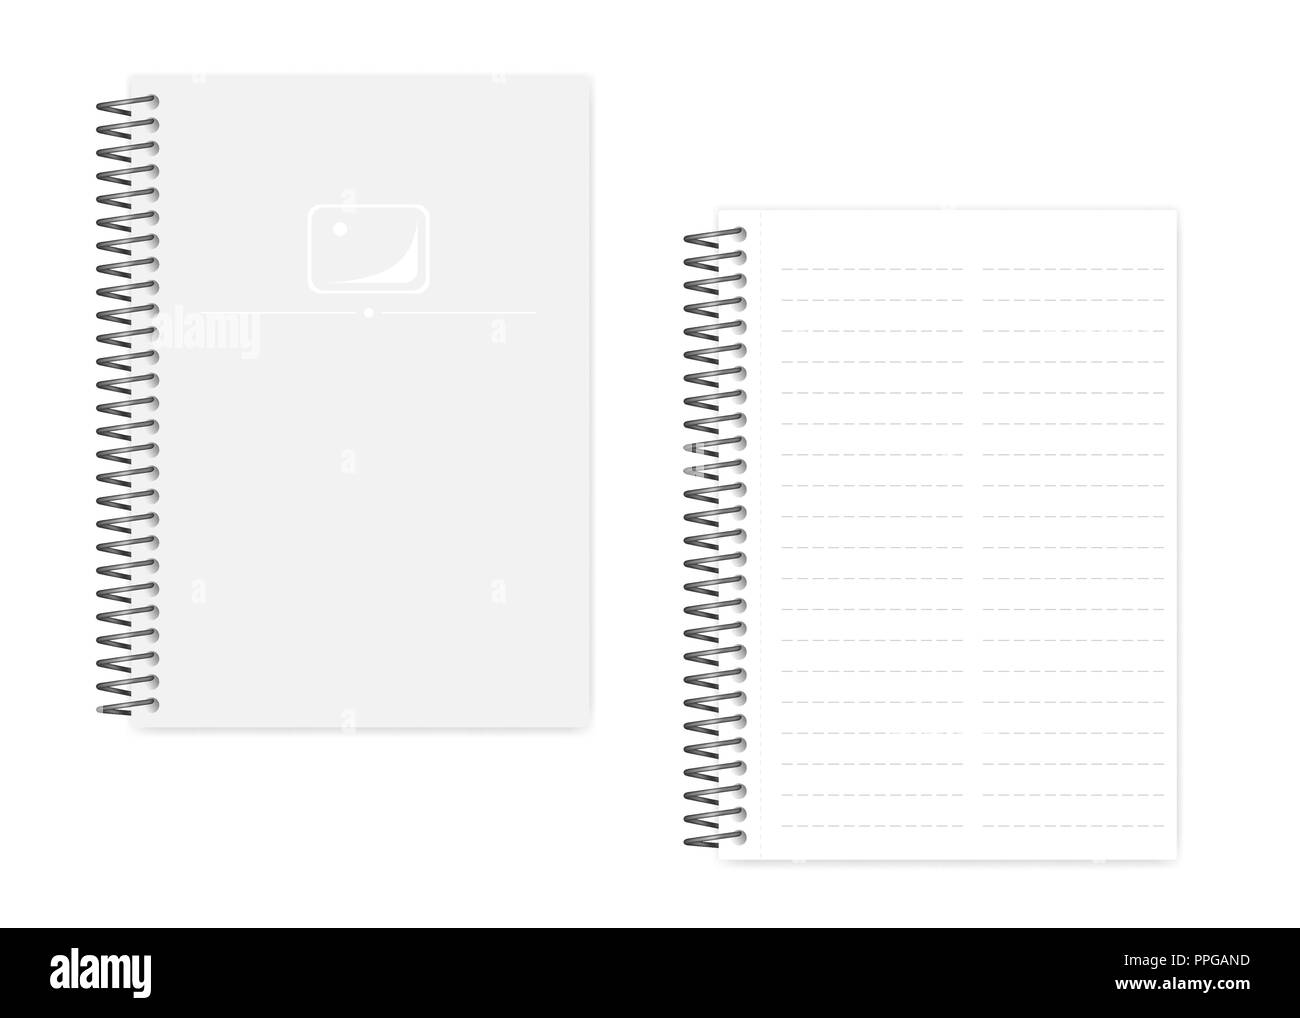 Two column dashed line spiral notebook with side perforation sheets, realistic vector mockup. Wire bound A5 size notepad, mock up. Loose leaf note pad - Stock Image